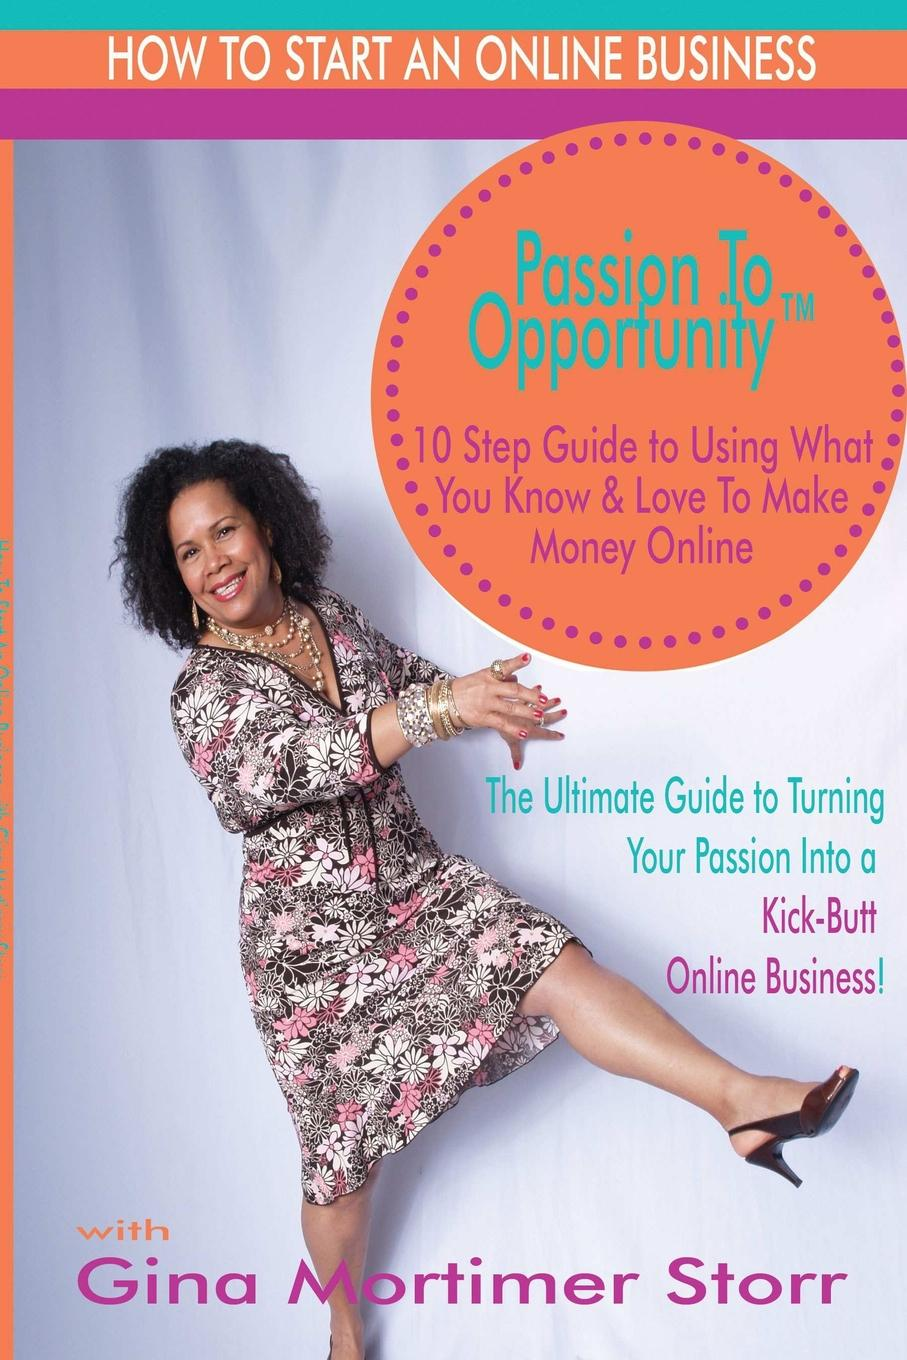 Gina Storr Passion to Opportunity. 10 Step Guide to Turn Your Passion Into an Online Business carlye adler the power of positive destruction how to turn a business idea into a revolution